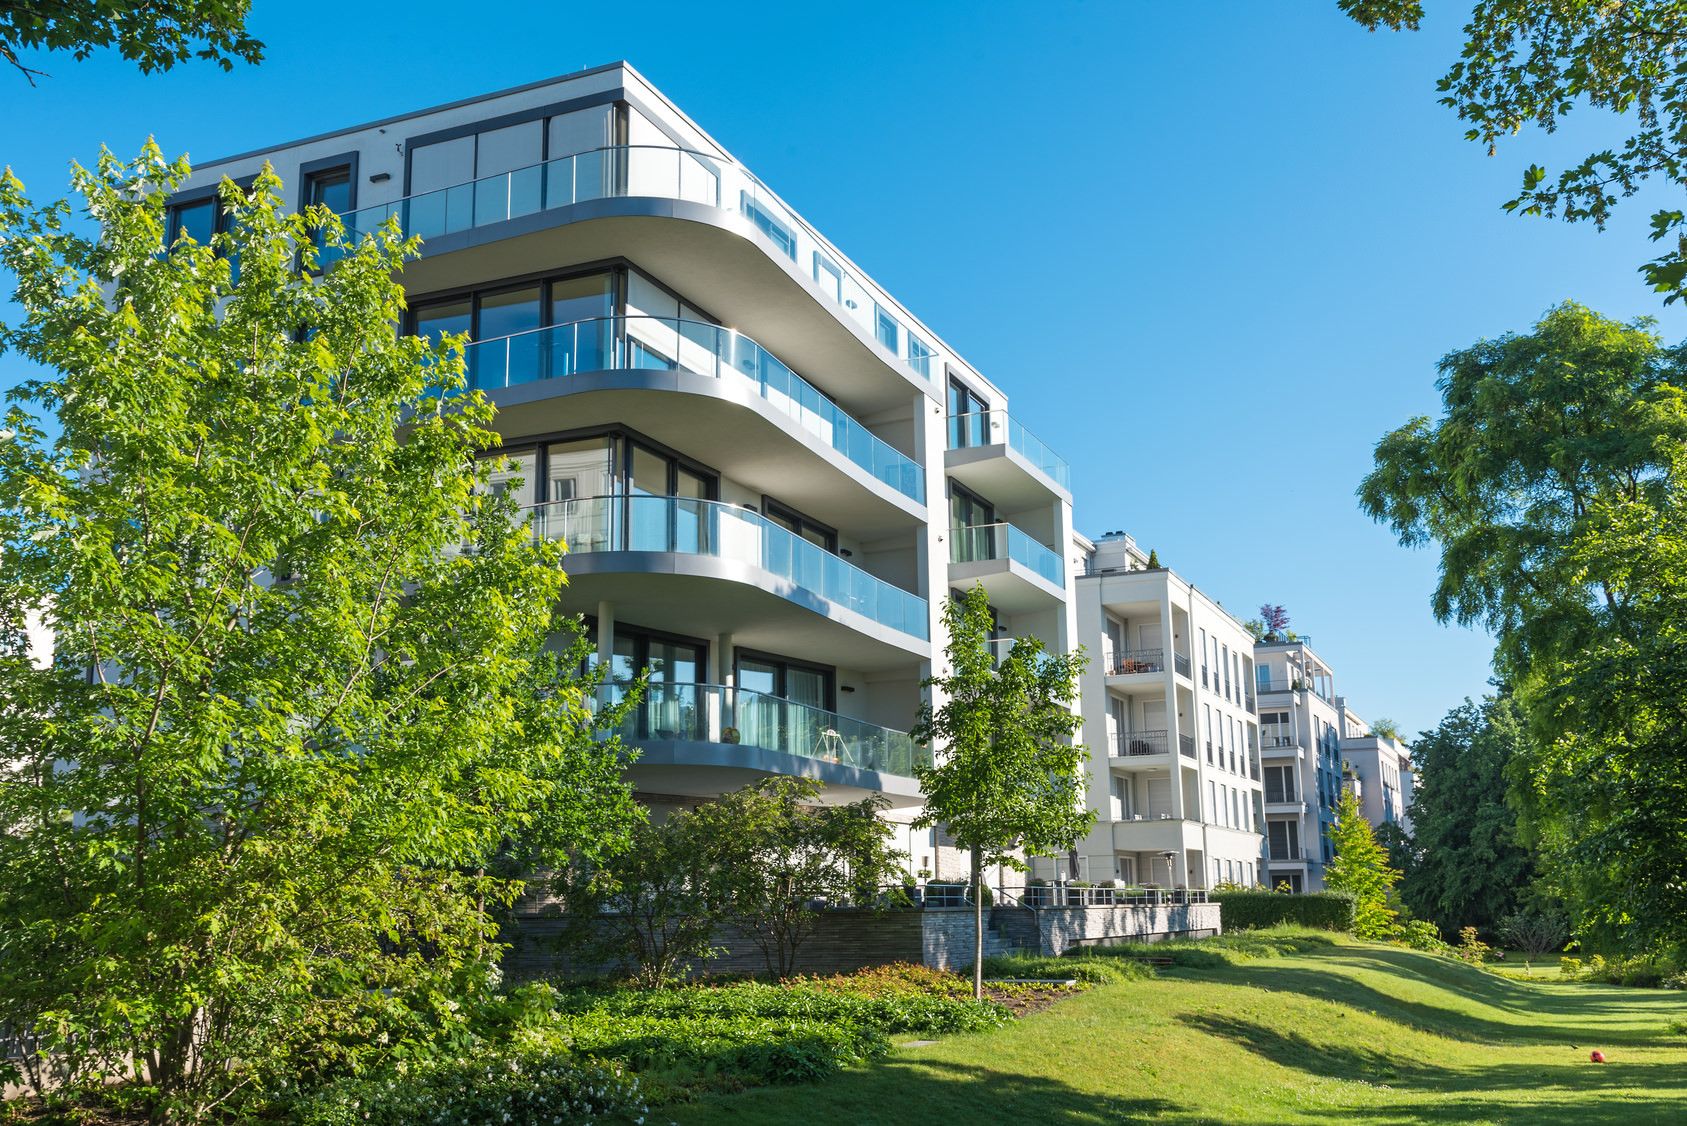 Reba Immobilien AG expandiert im Bereich Off-Market-Immobilien-Investments